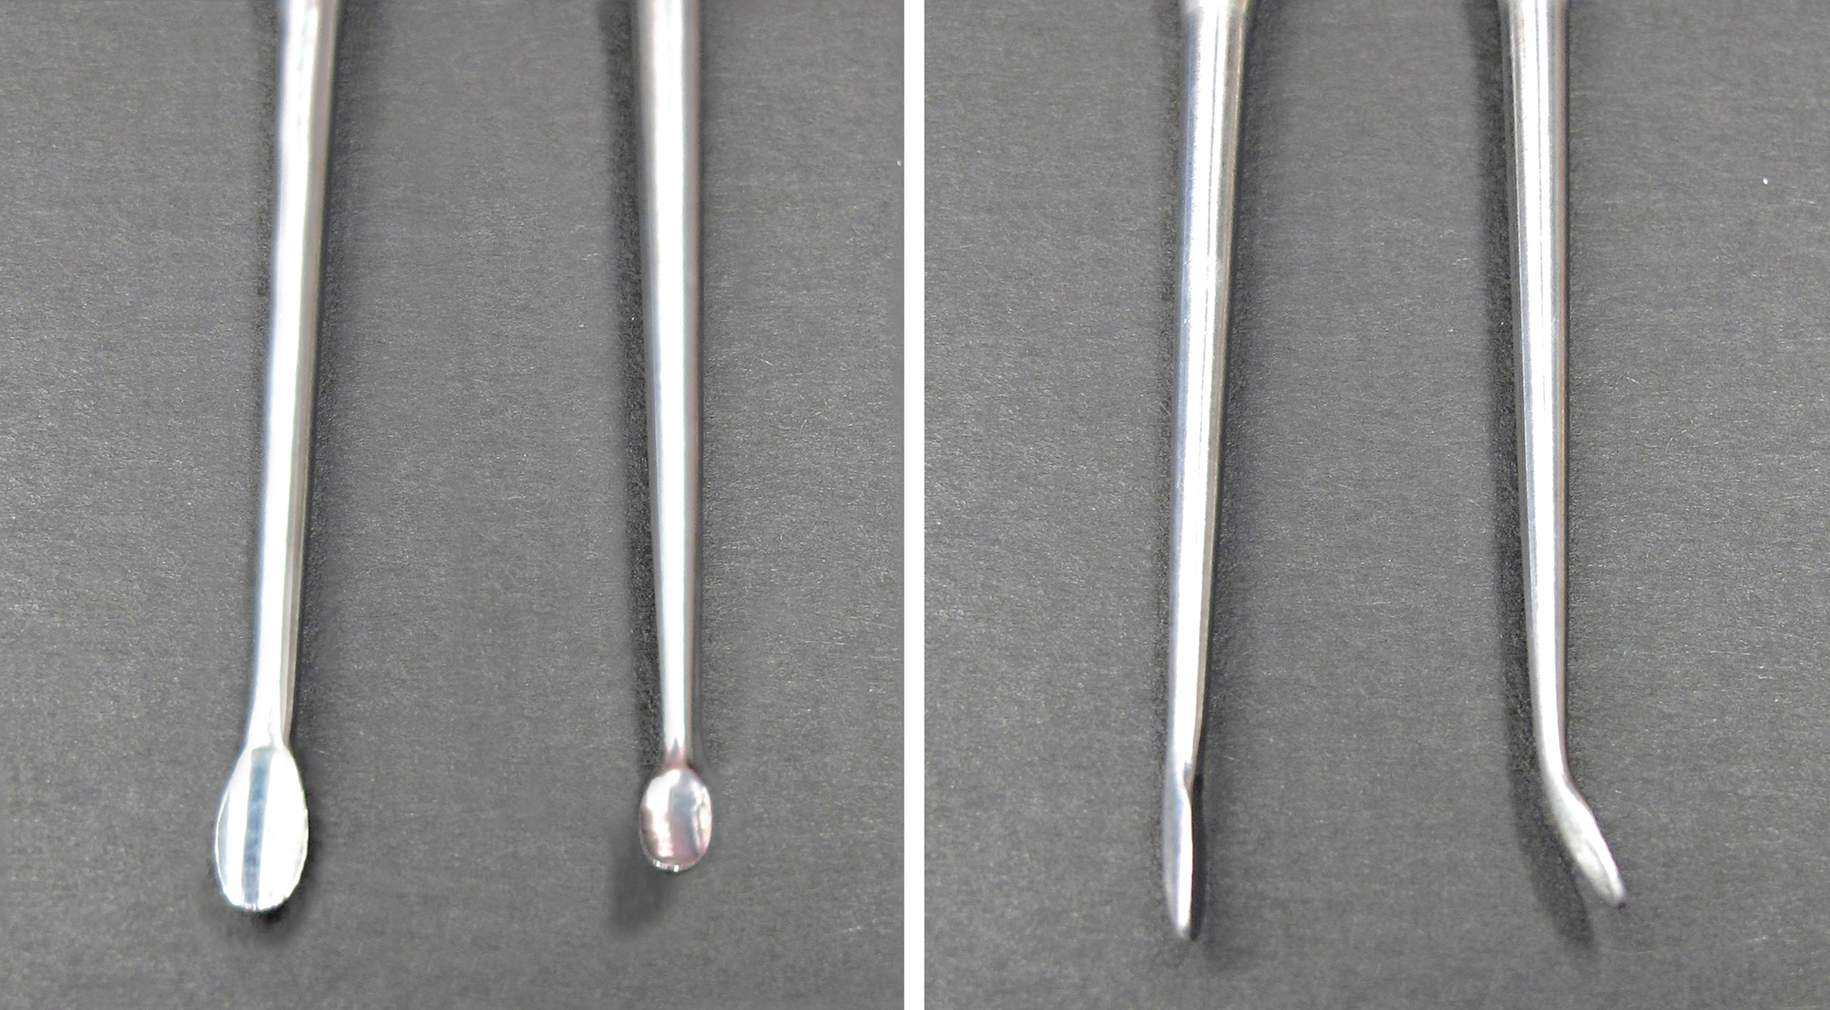 Figure 5: Customized angled instruments with appropriately sharp tips can significantly facilitate mobilization of more fibrous tumors away from the brain-tumor interface. The angled instrument shown here is my favorite one for dissecting and mobilizing acoustic tumors and meningiomas away from the brainstem.